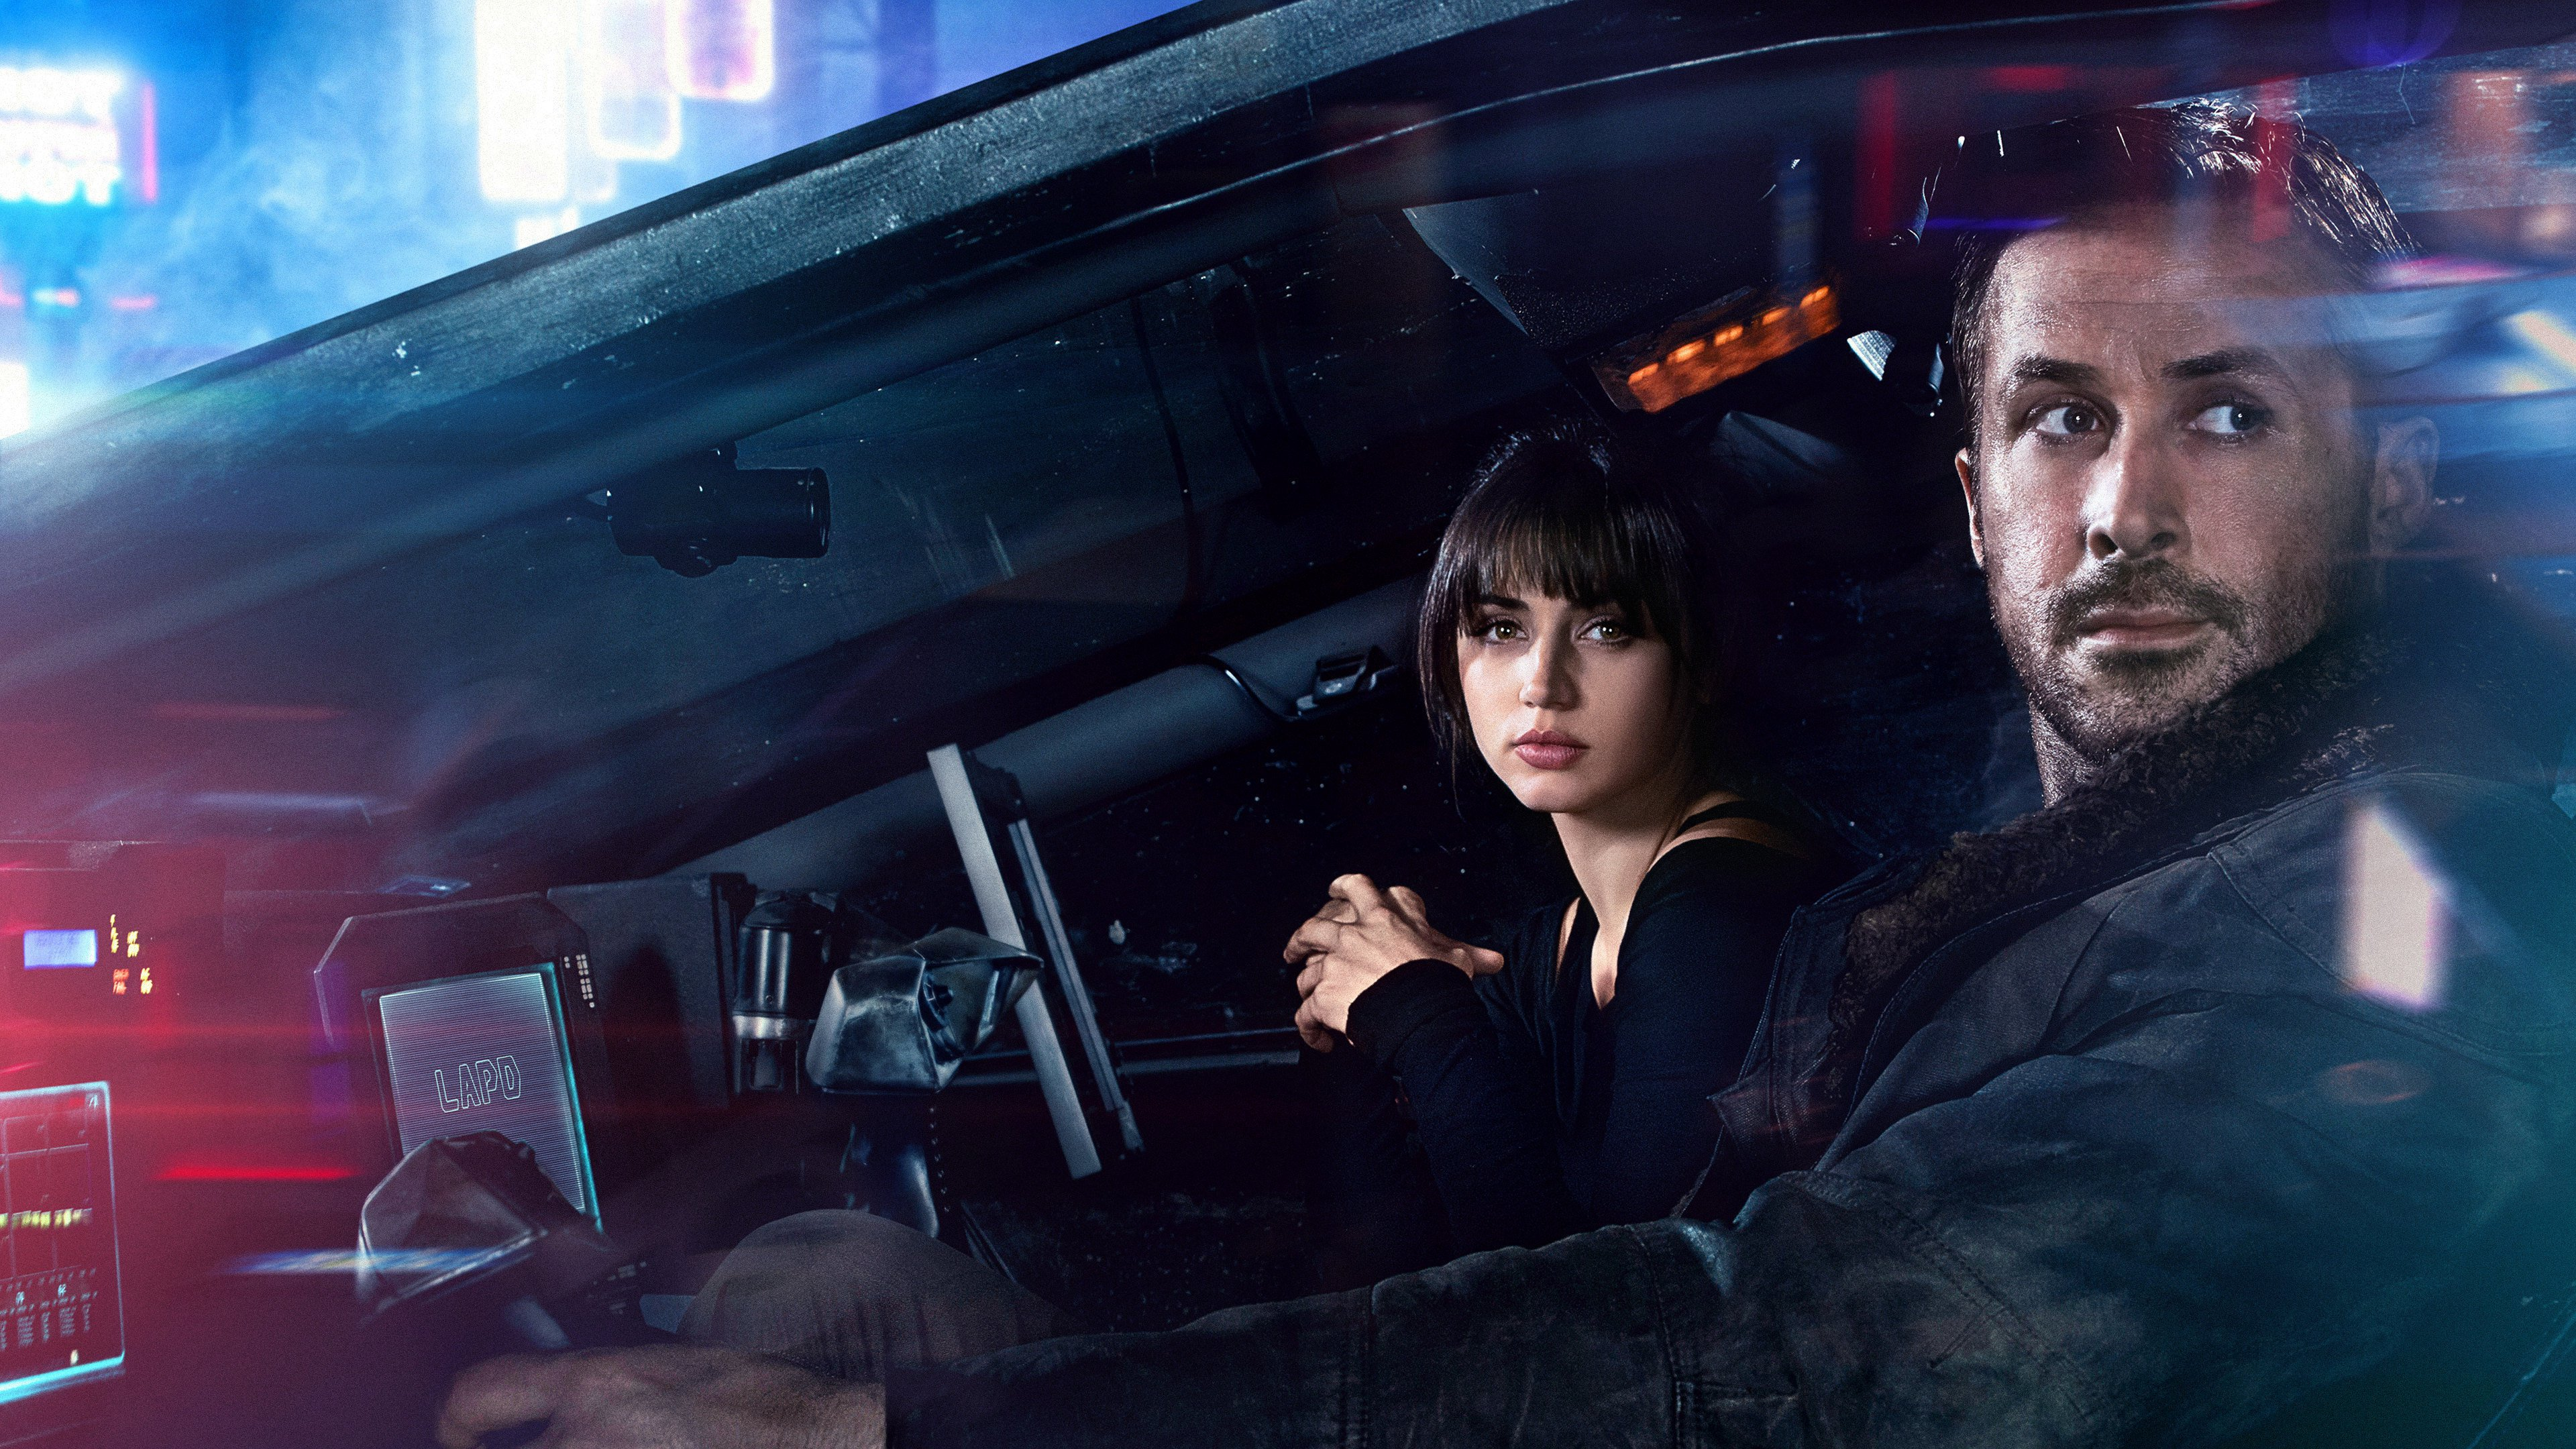 88 Blade Runner 2049 Hd Wallpapers Background Images Wallpaper